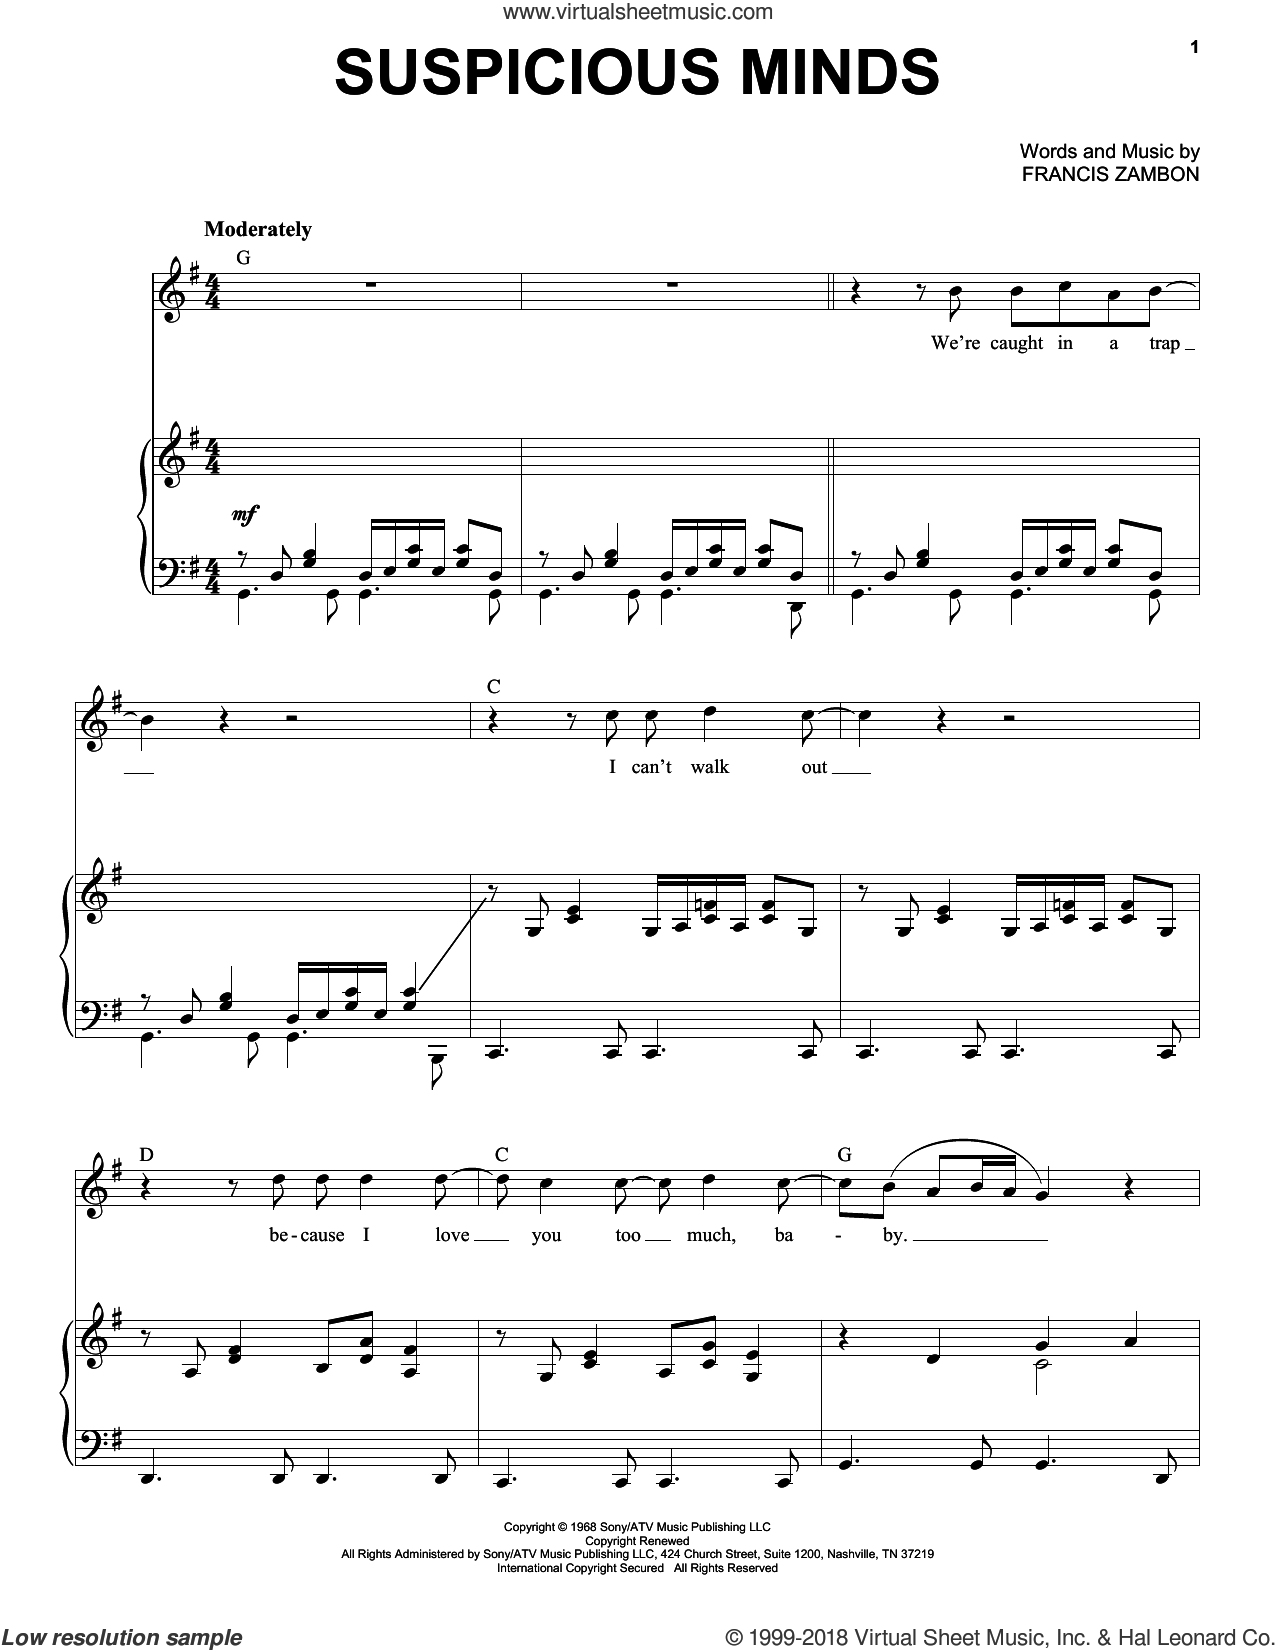 Suspicious Minds sheet music for voice and piano by Elvis Presley, Dwight Yoakam and Francis Zambon, intermediate skill level